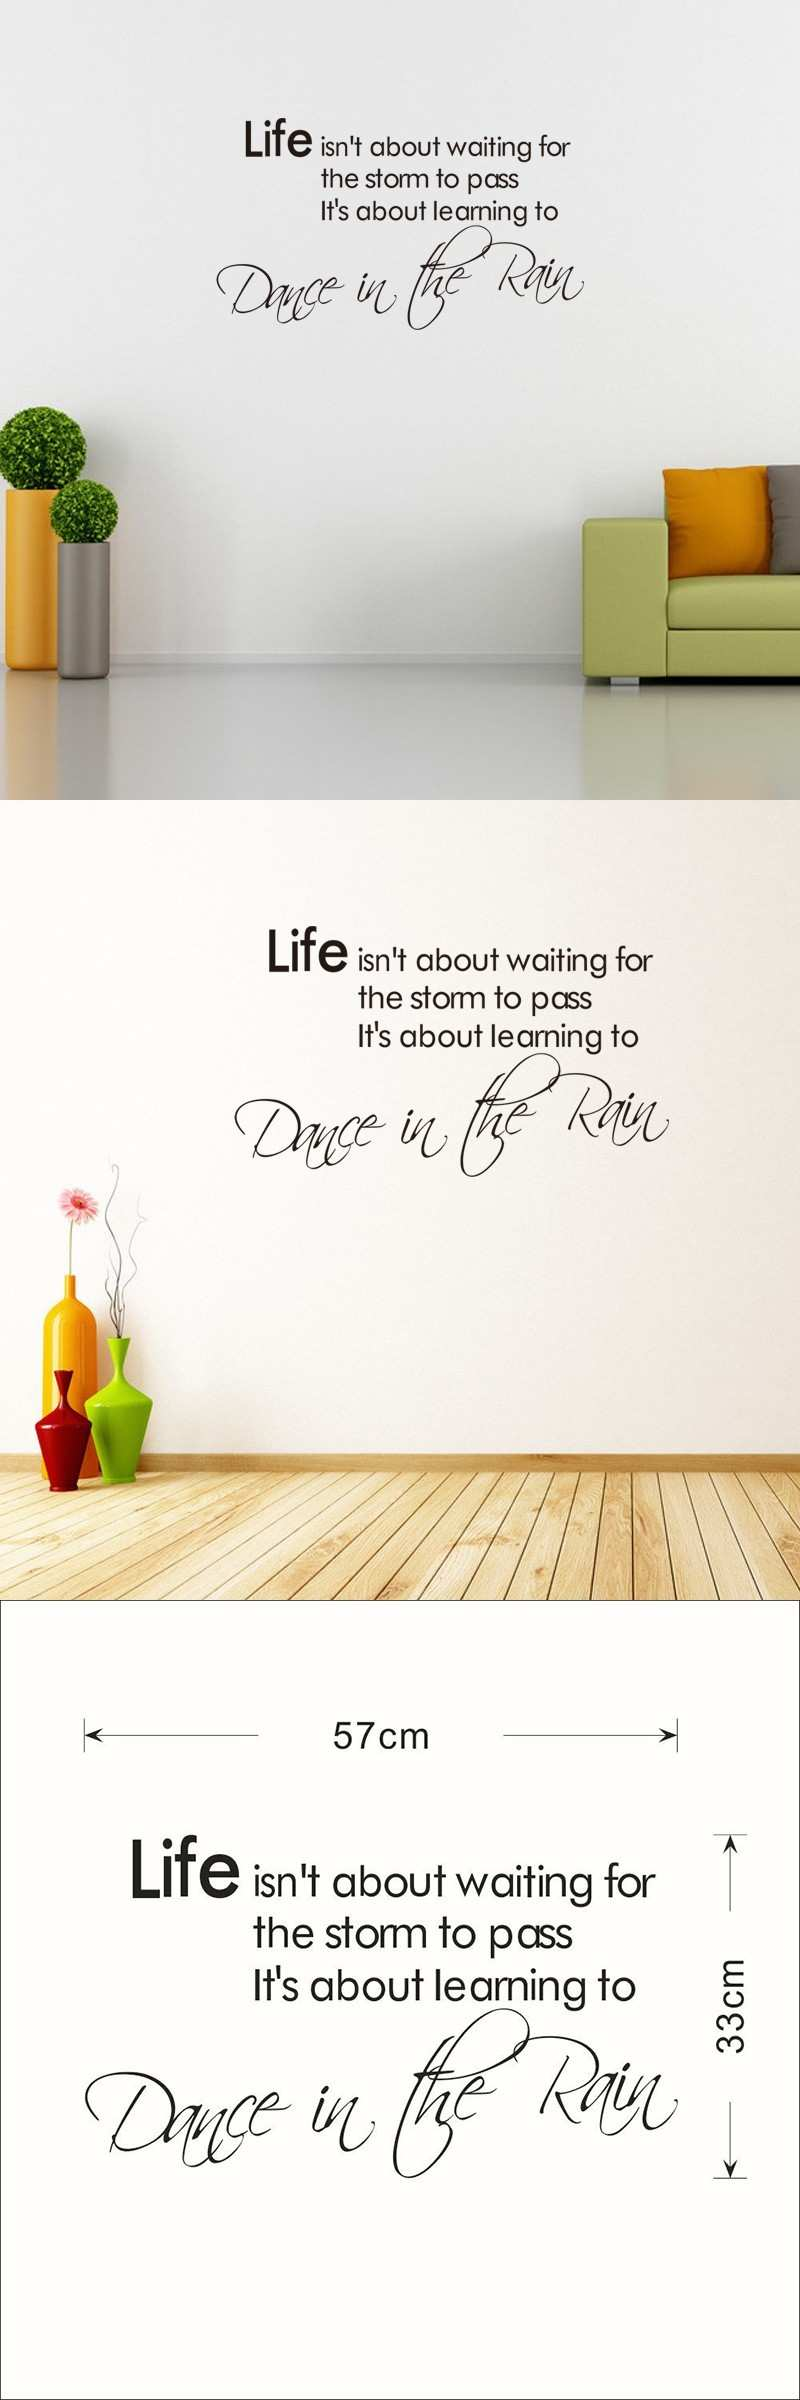 Life is not About Waiting 57 33cm Removable Cute Shelf Art